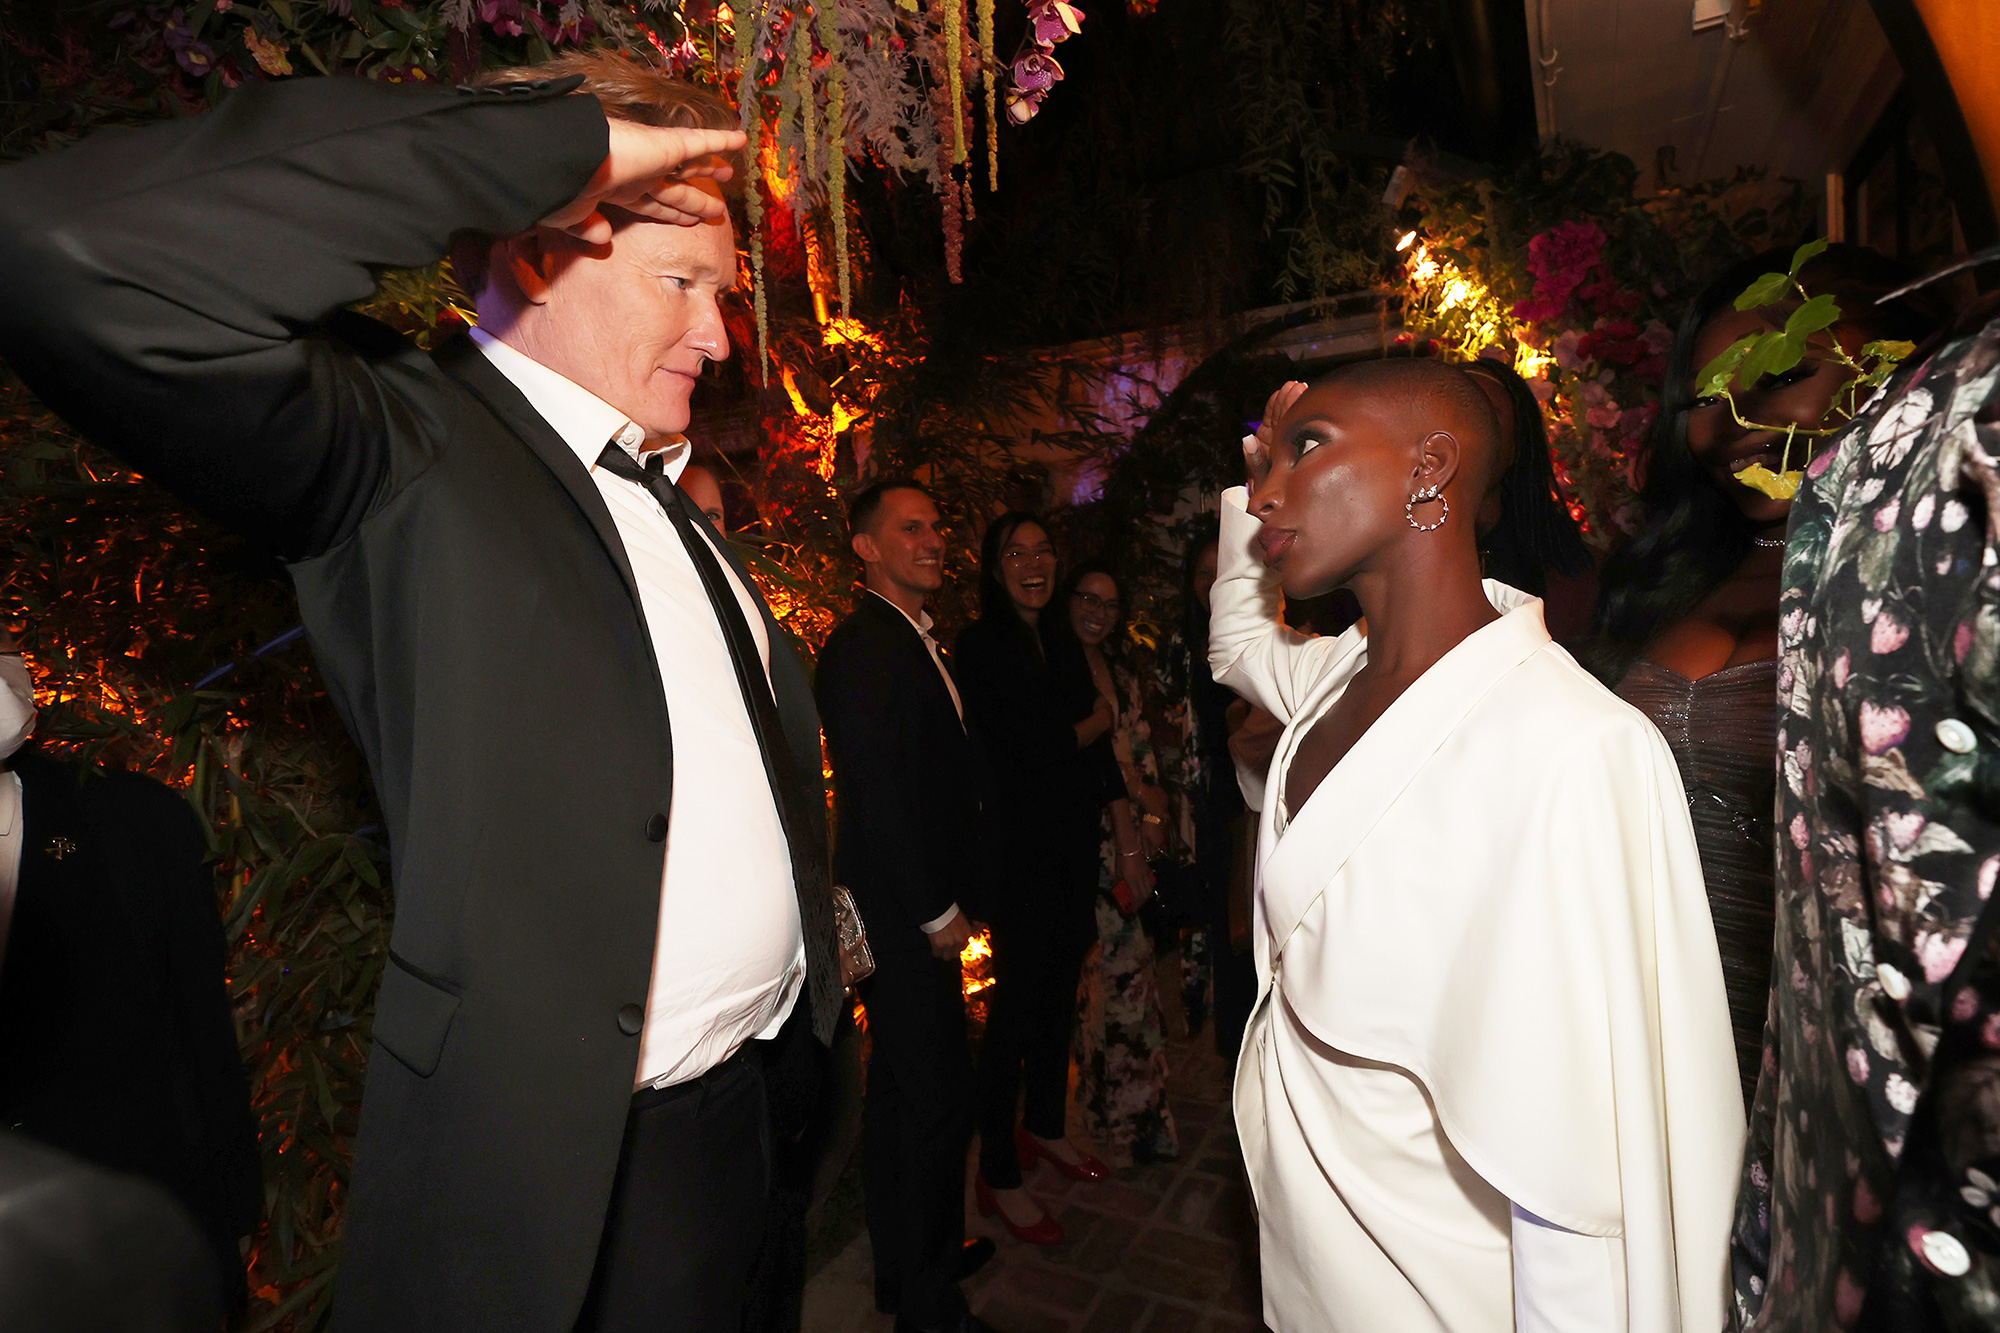 Conan O'Brien and Michaela Coel attend the HBO/ HBO Max Post Emmys Reception at San Vicente Bungalows on September 19, 2021